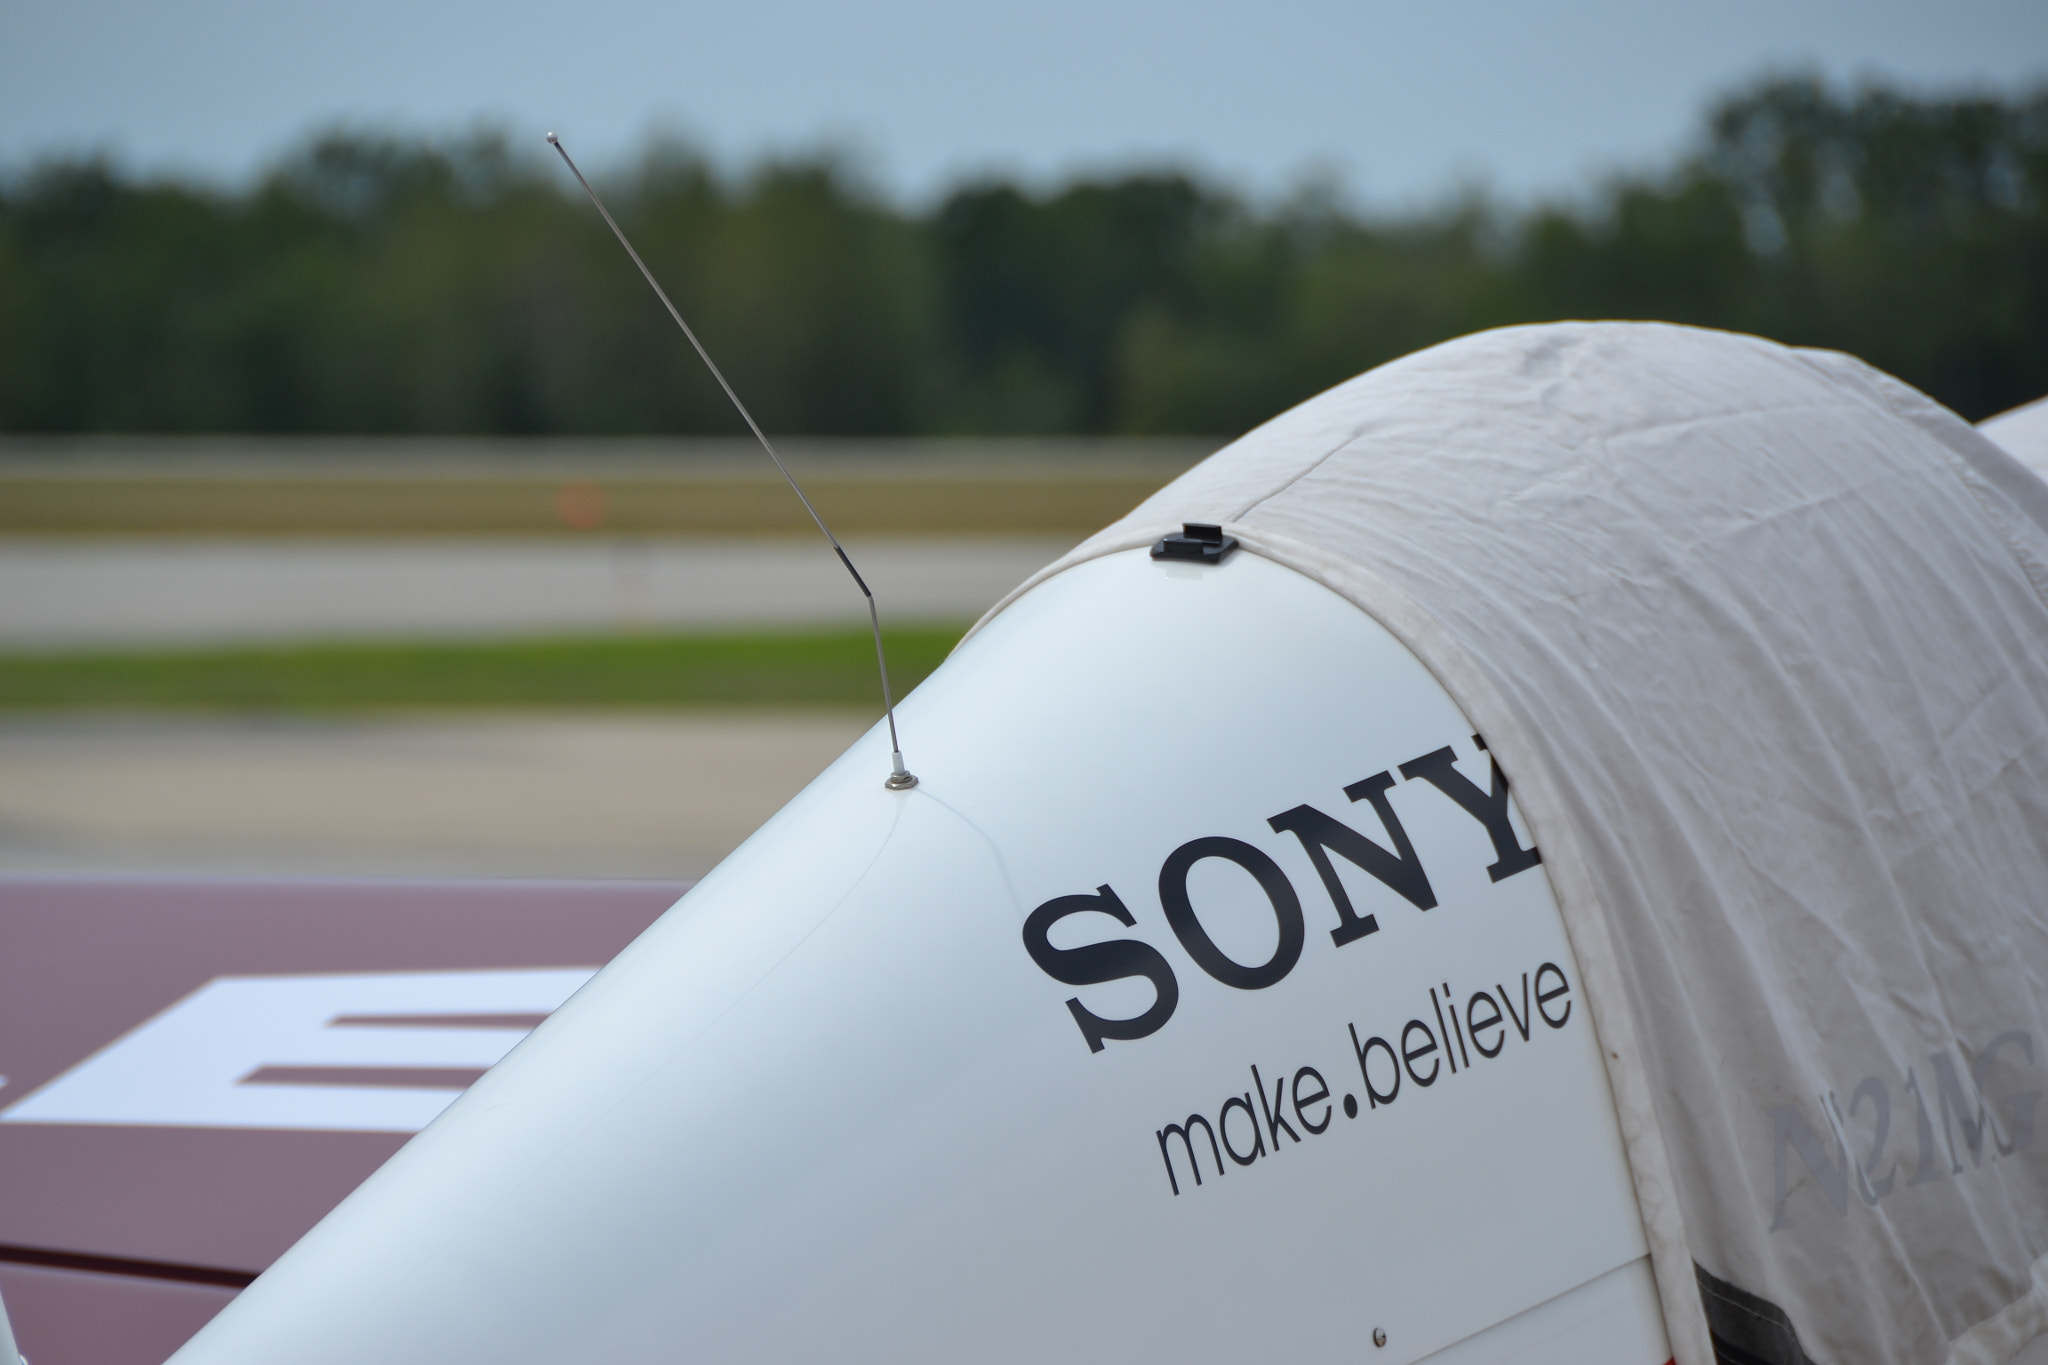 Photograph Sony Plane Uncovering by Daniel Joseph on 500px